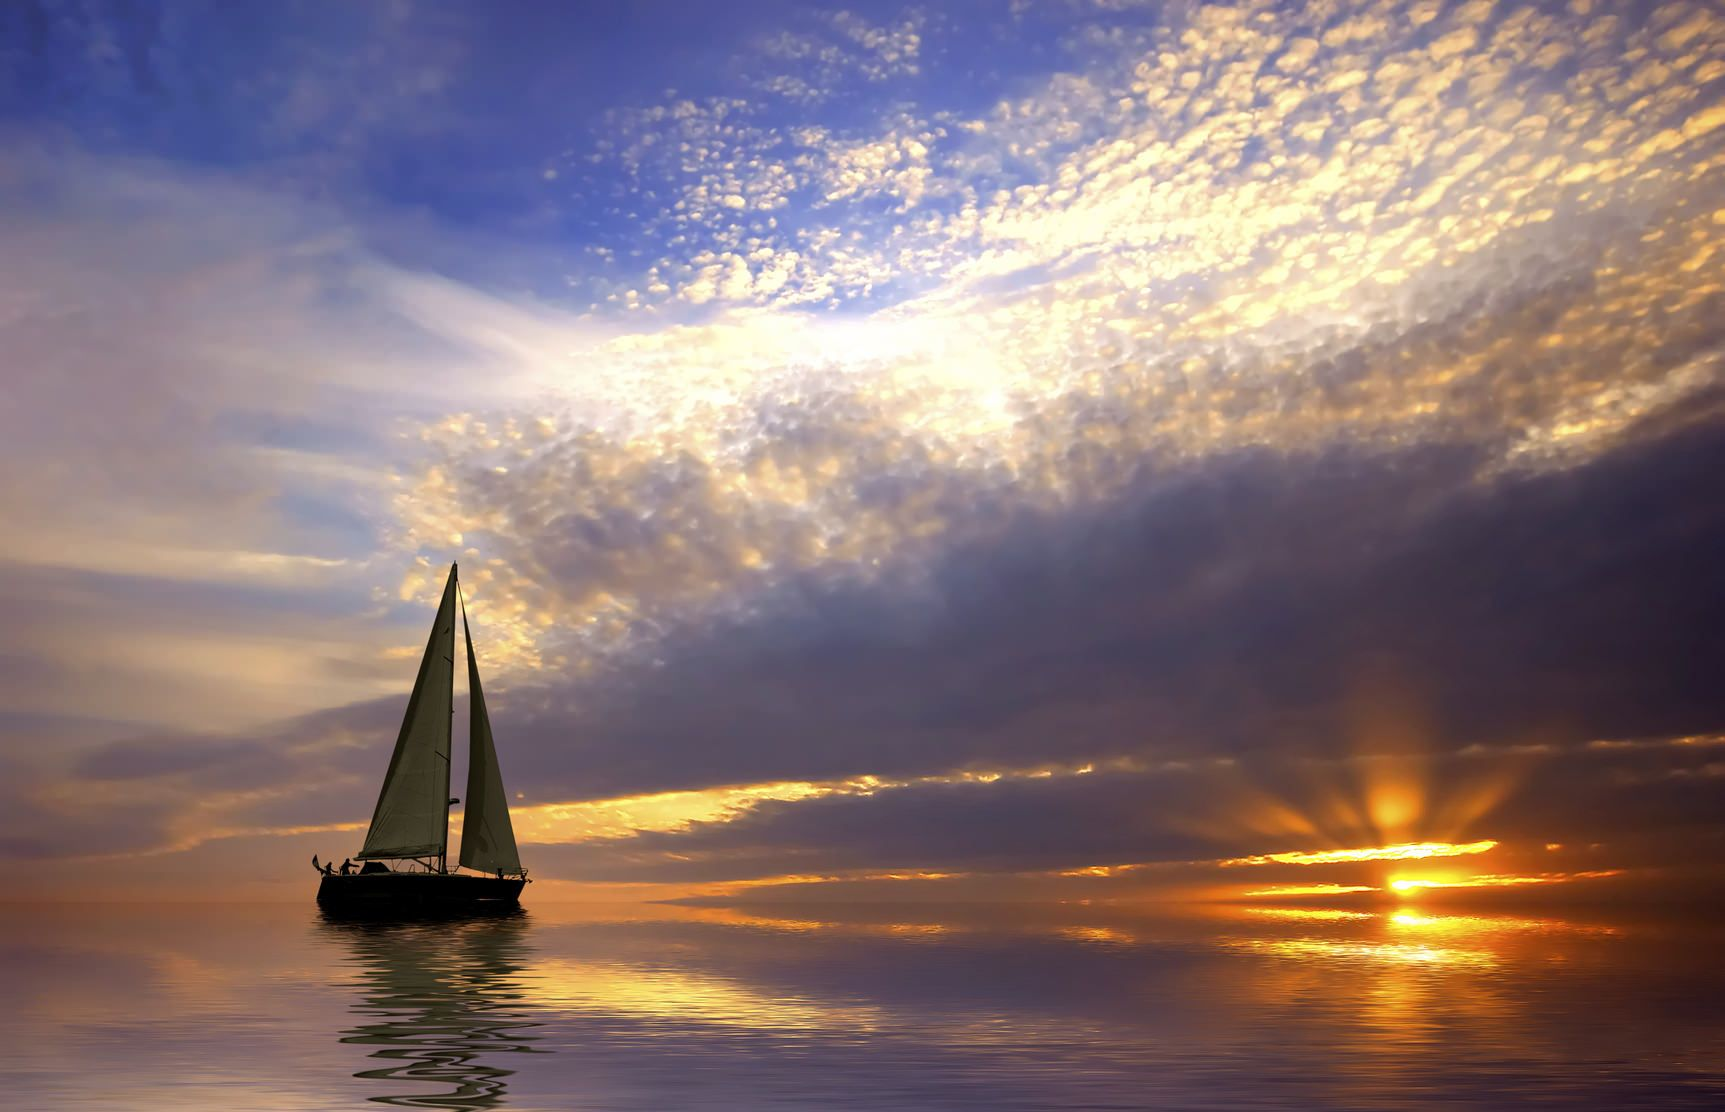 Landscape Photography Tip Use Water To Help Your Exposure Beautiful Sunset Boat Sailing Trips